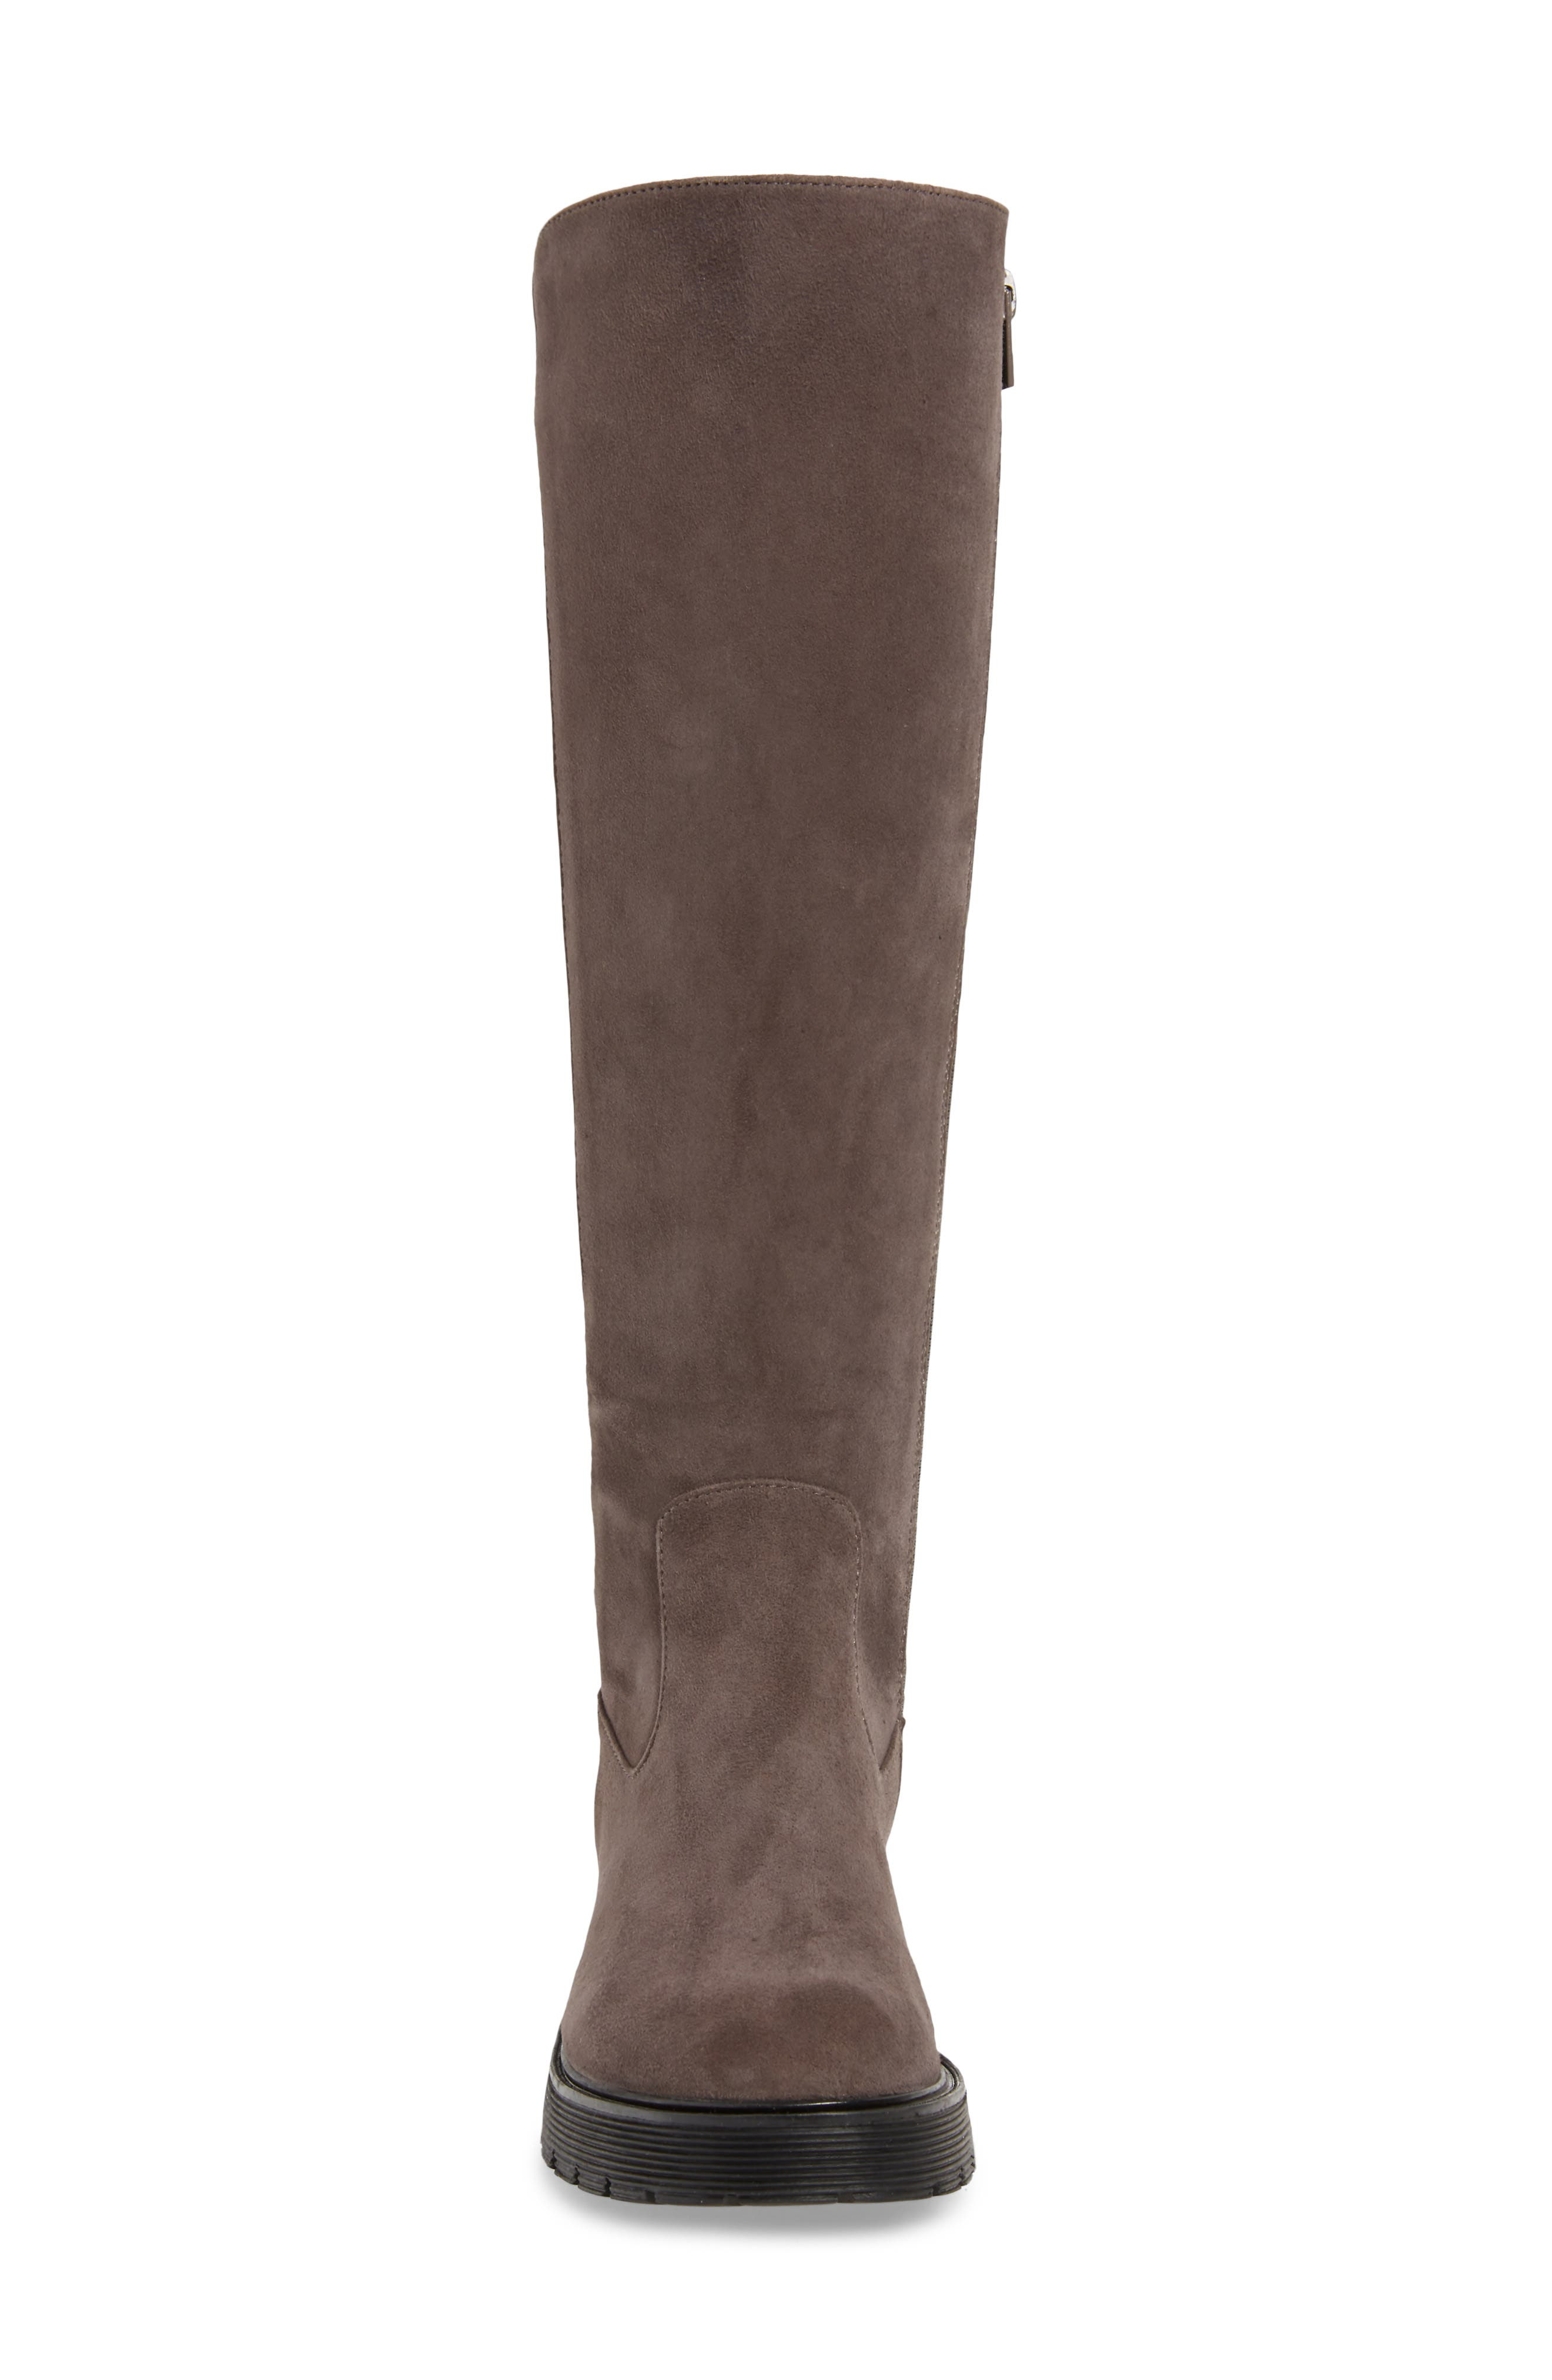 Themis Knee High Riding Boot,                             Alternate thumbnail 4, color,                             DARK UTILITY/ BLACK SUEDE